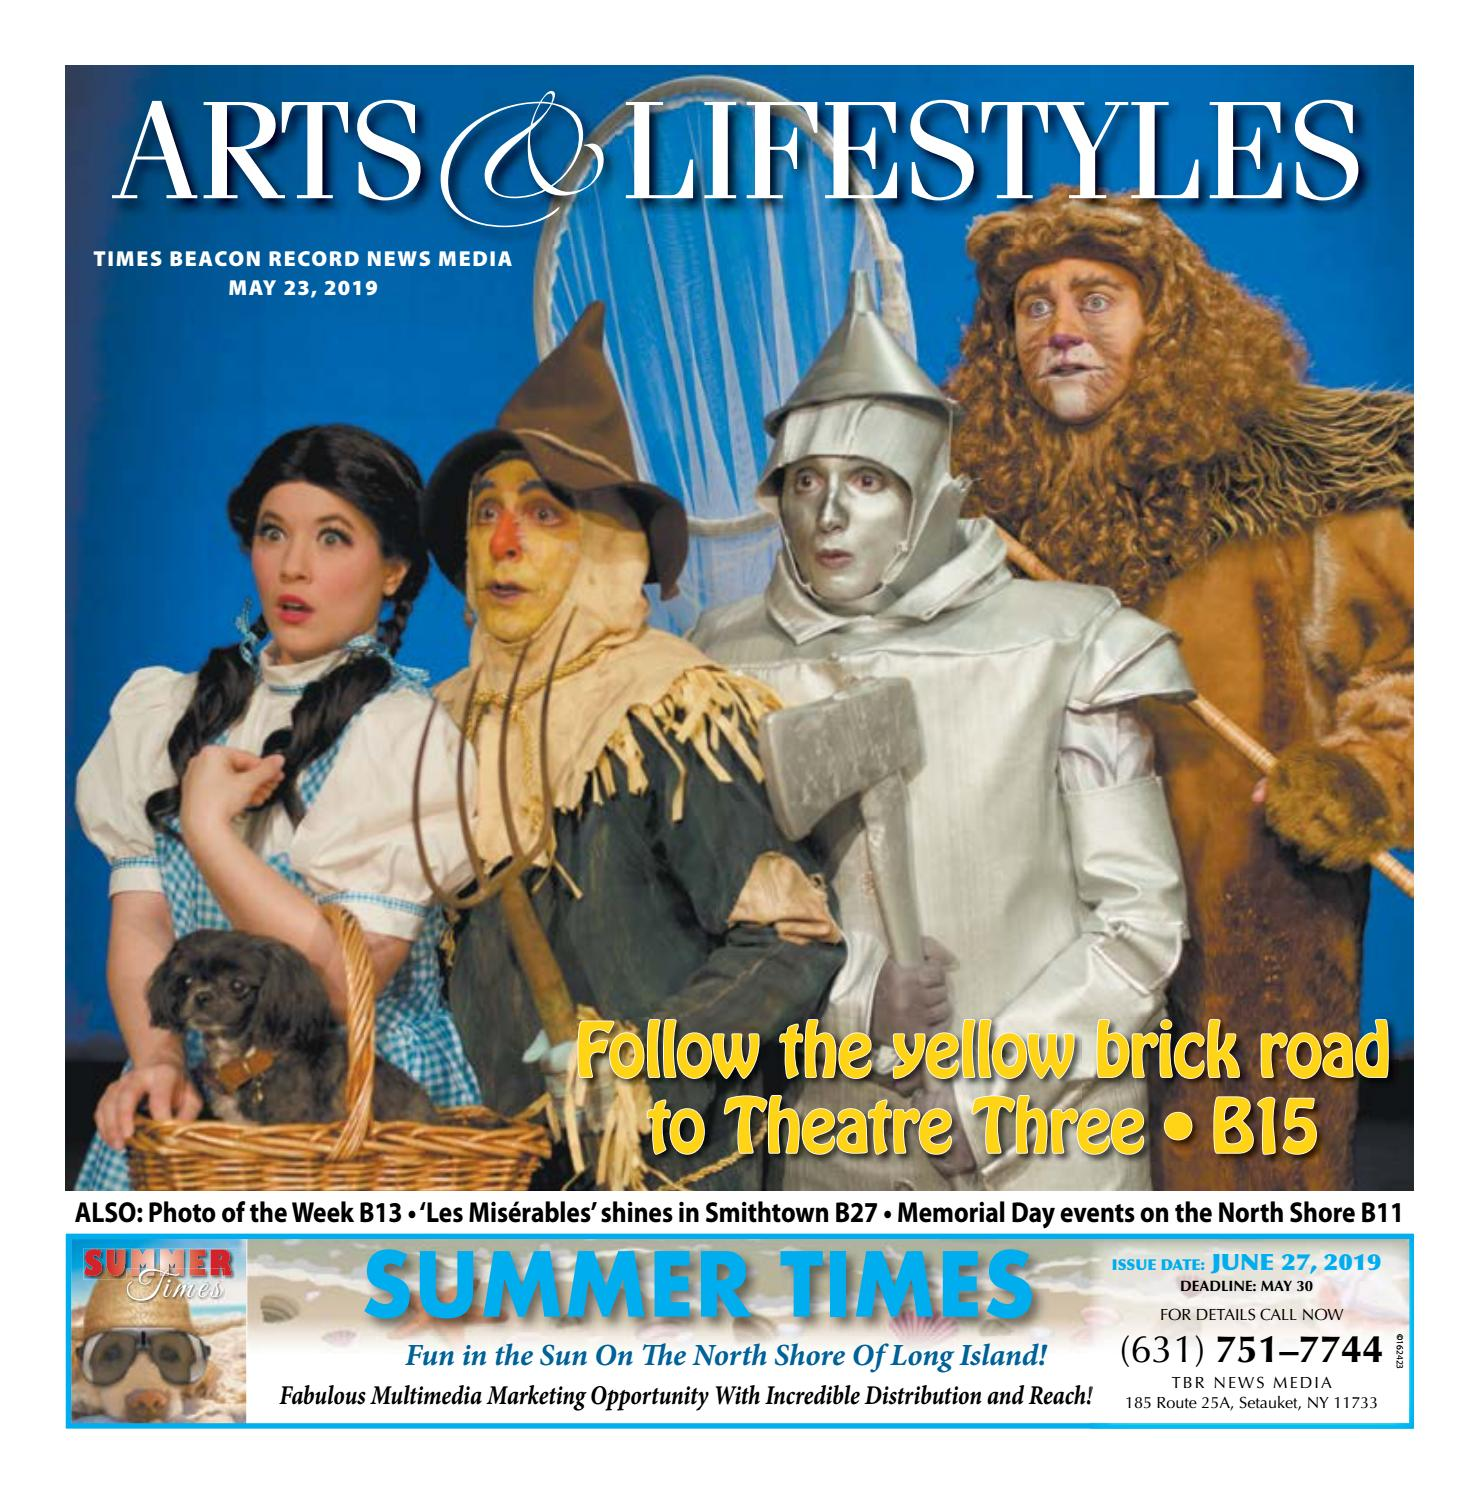 Arts & Lifestyles - May 23, 2019 by TBR News Media - issuu